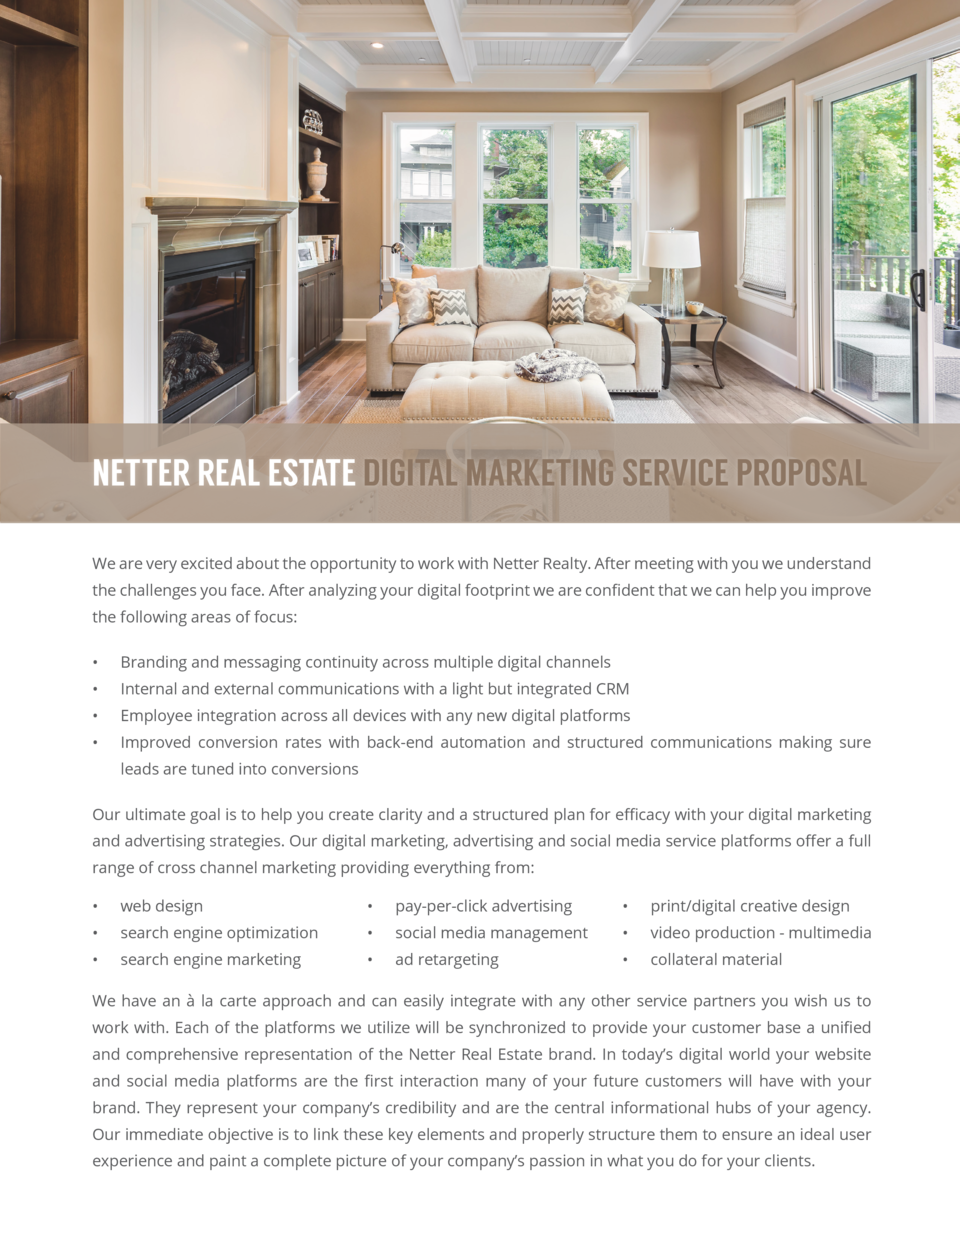 NETTER REAL ESTATE DIGITAL MARKETING SERVICE PROPOSAL We are very excited about the opportunity to work with Netter Realty...